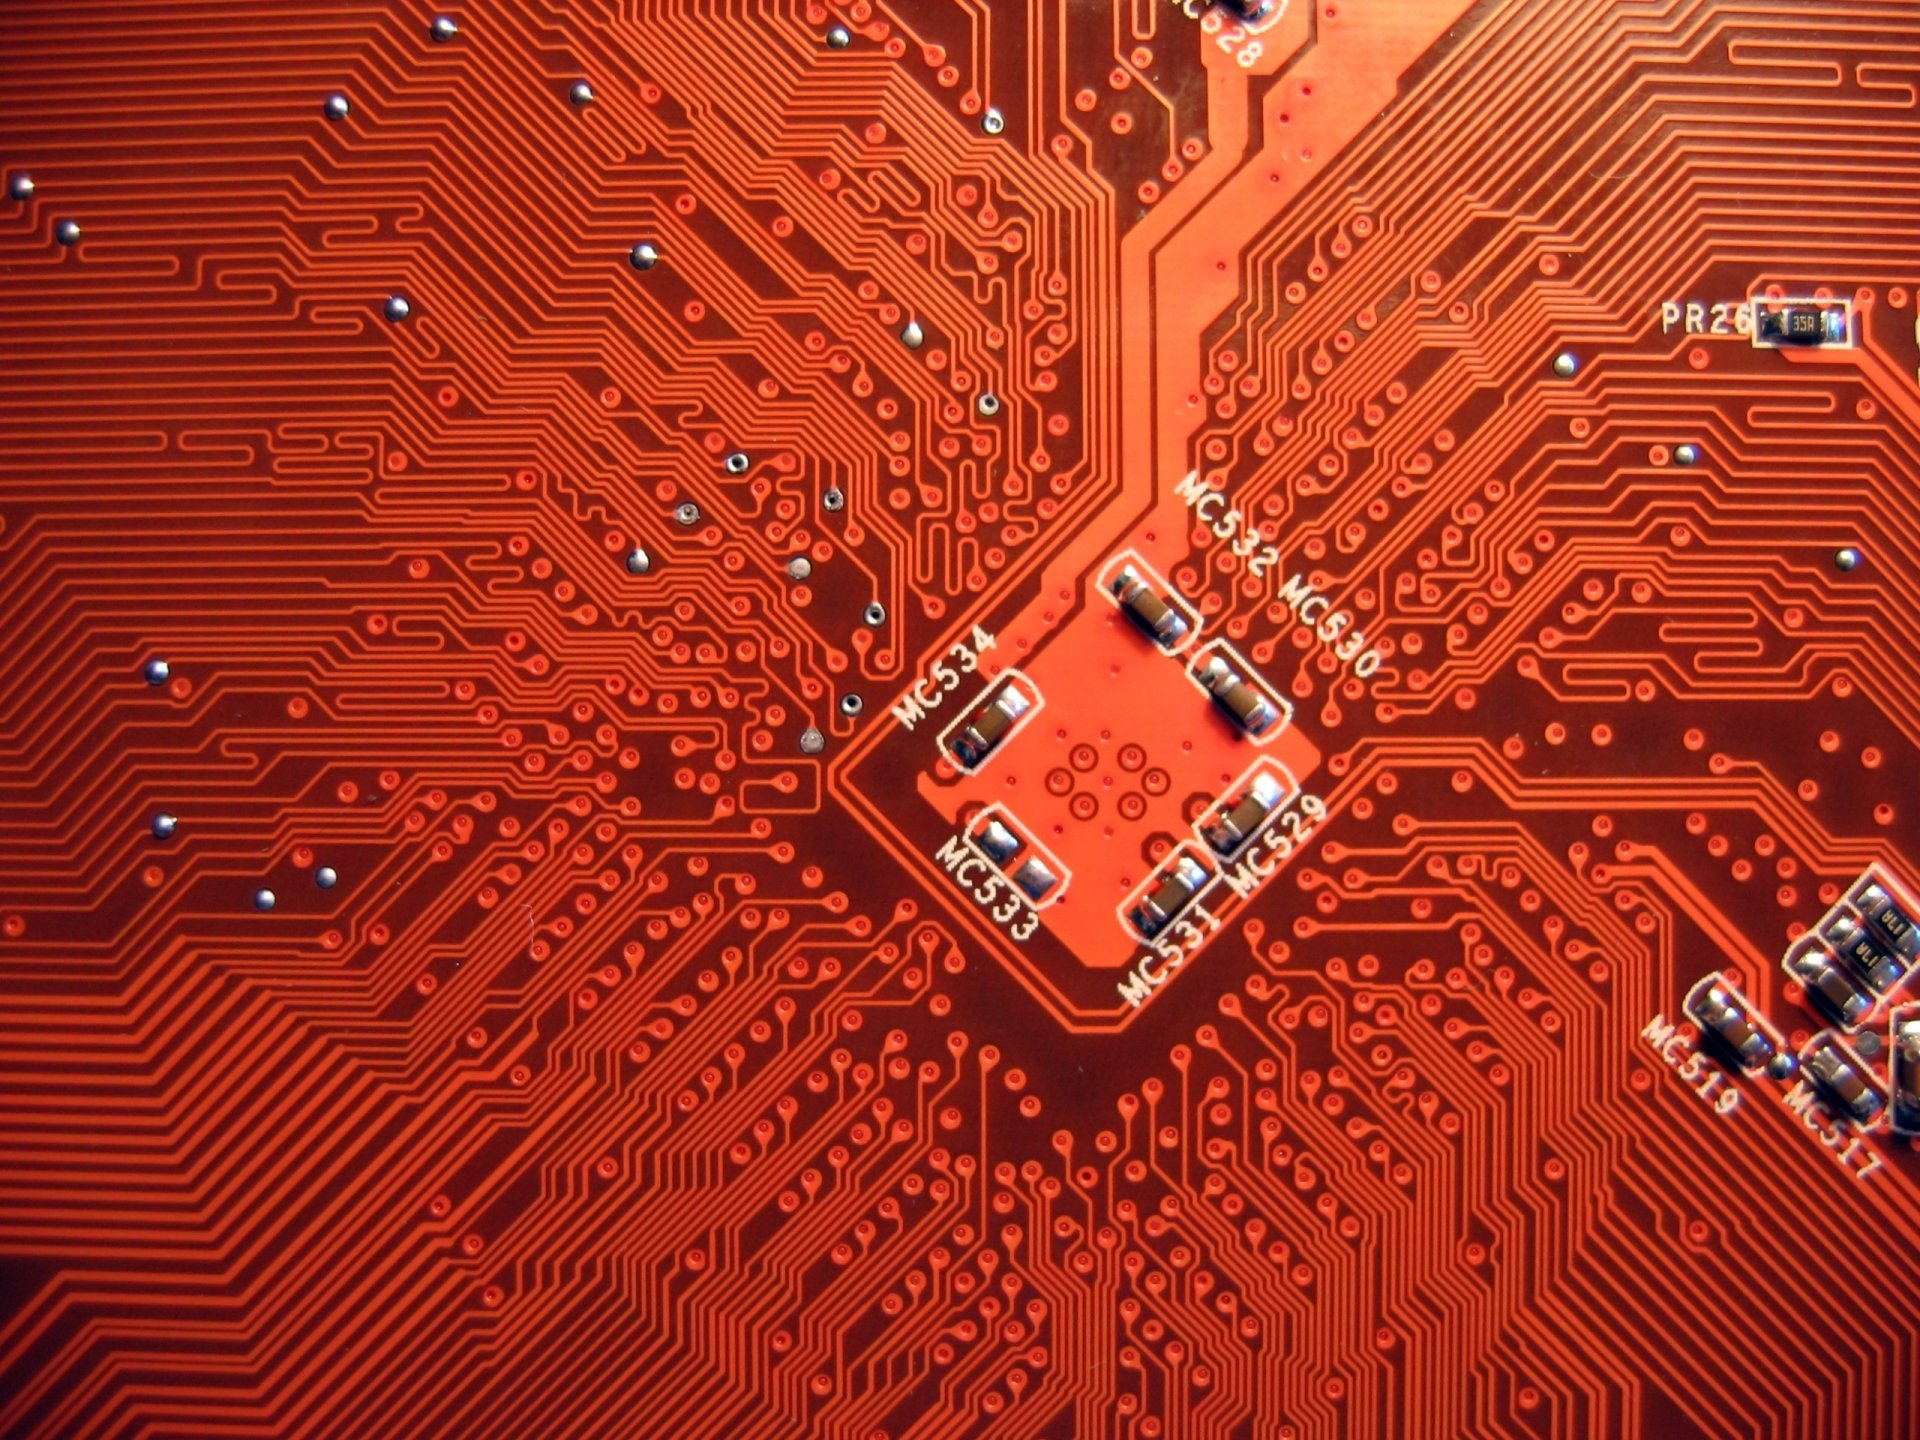 Technology - Hardware  Wallpaper